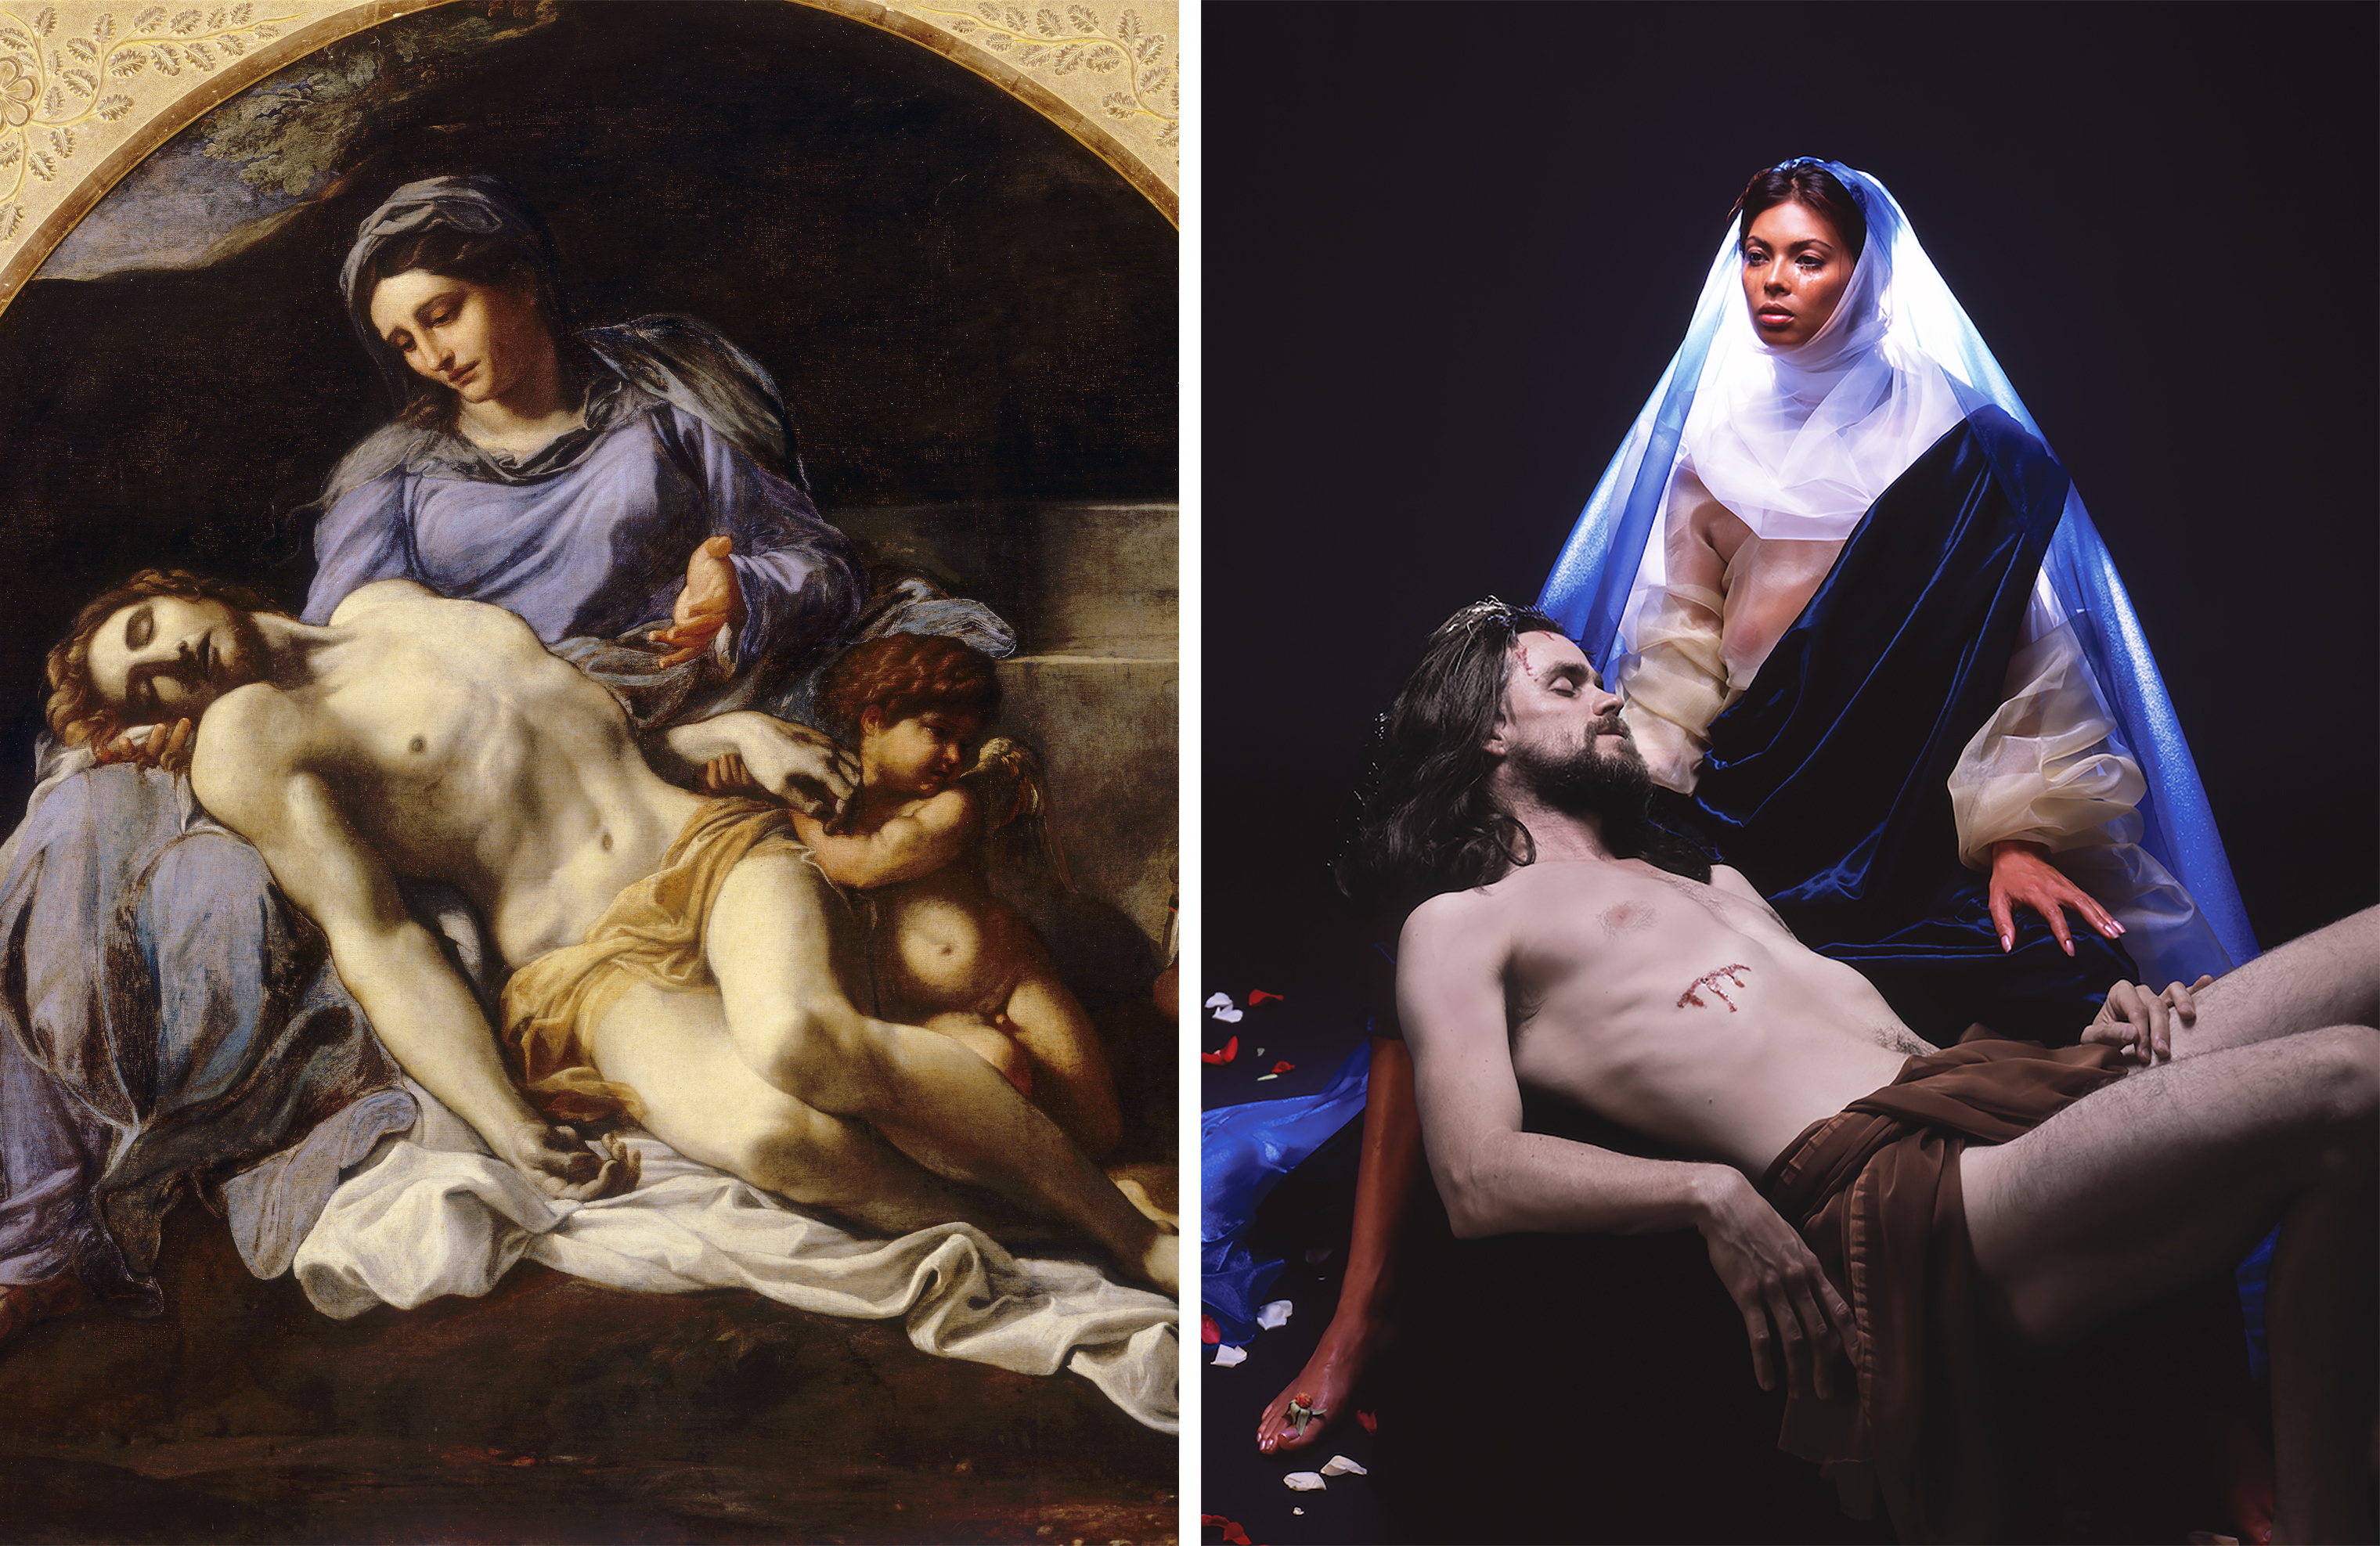 Left: Annibale Carracci, Pietà, 1599–1600 (Alinari Archives/Corbis/Getty Images); Right: Nika Nesgoda, Pietà, 2002